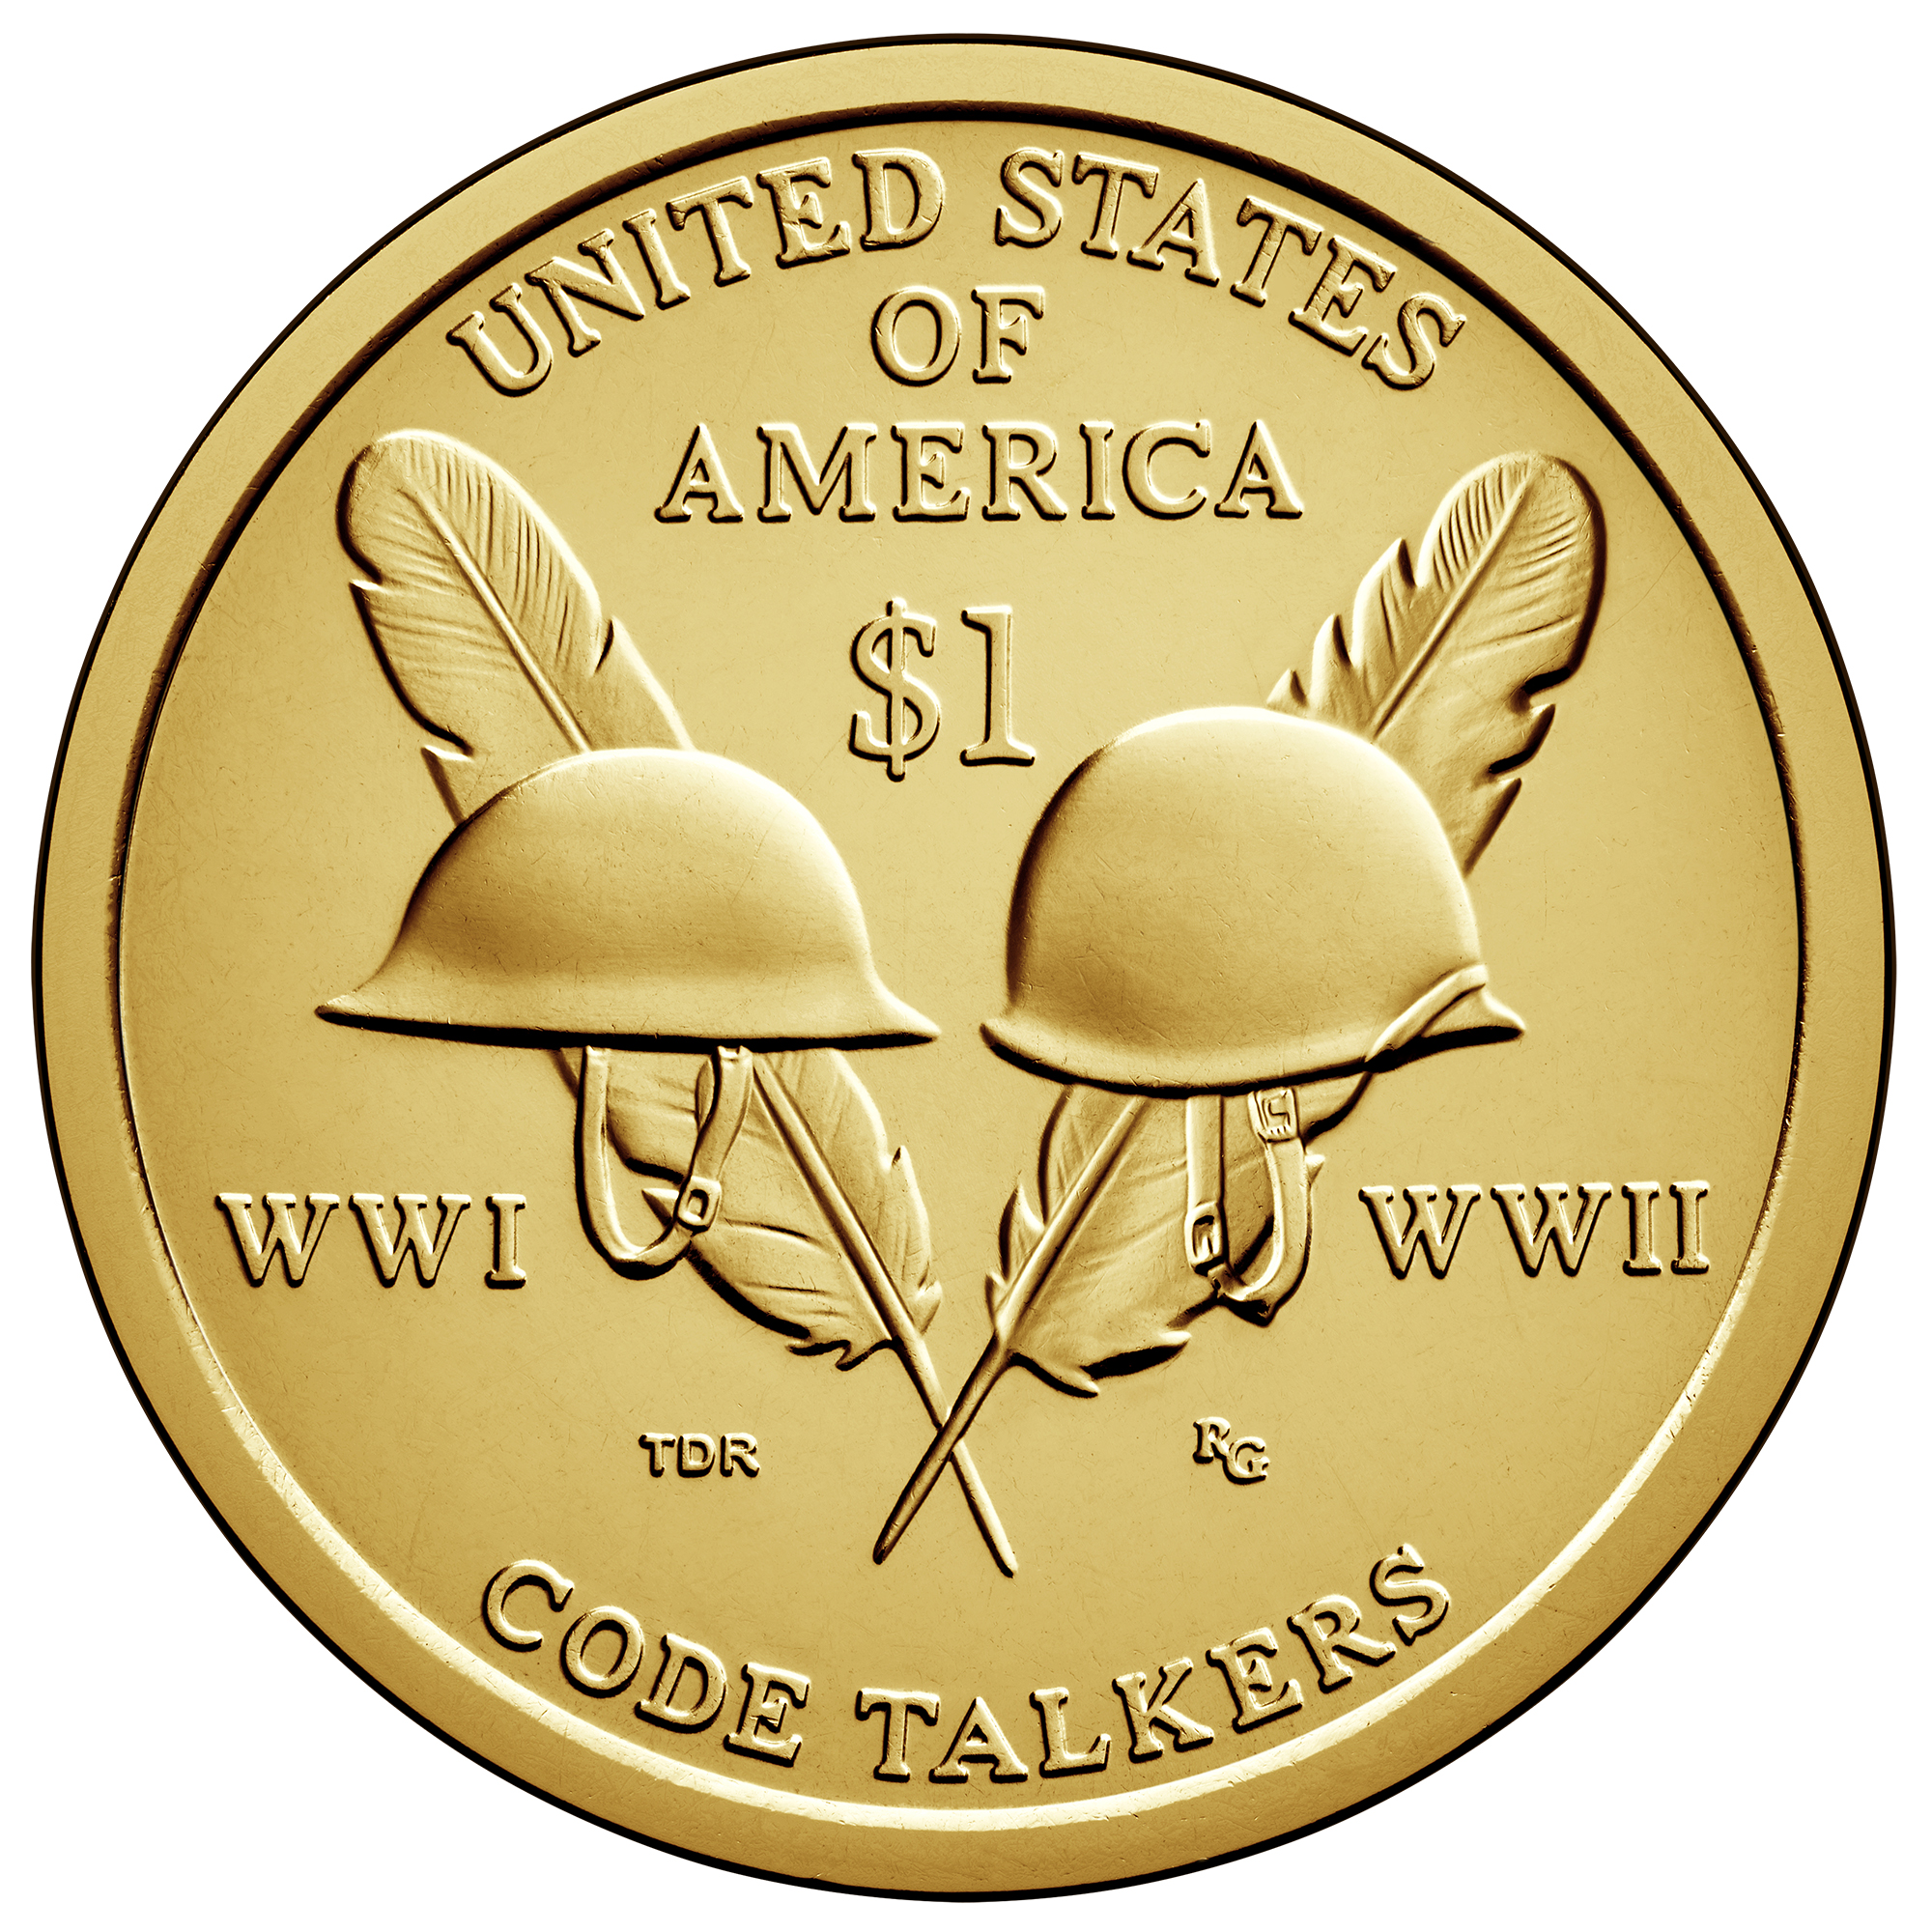 By United States Mint - United States Mint Image Library, Public Domain, https://commons.wikimedia.org/w/index.php?curid=46235336